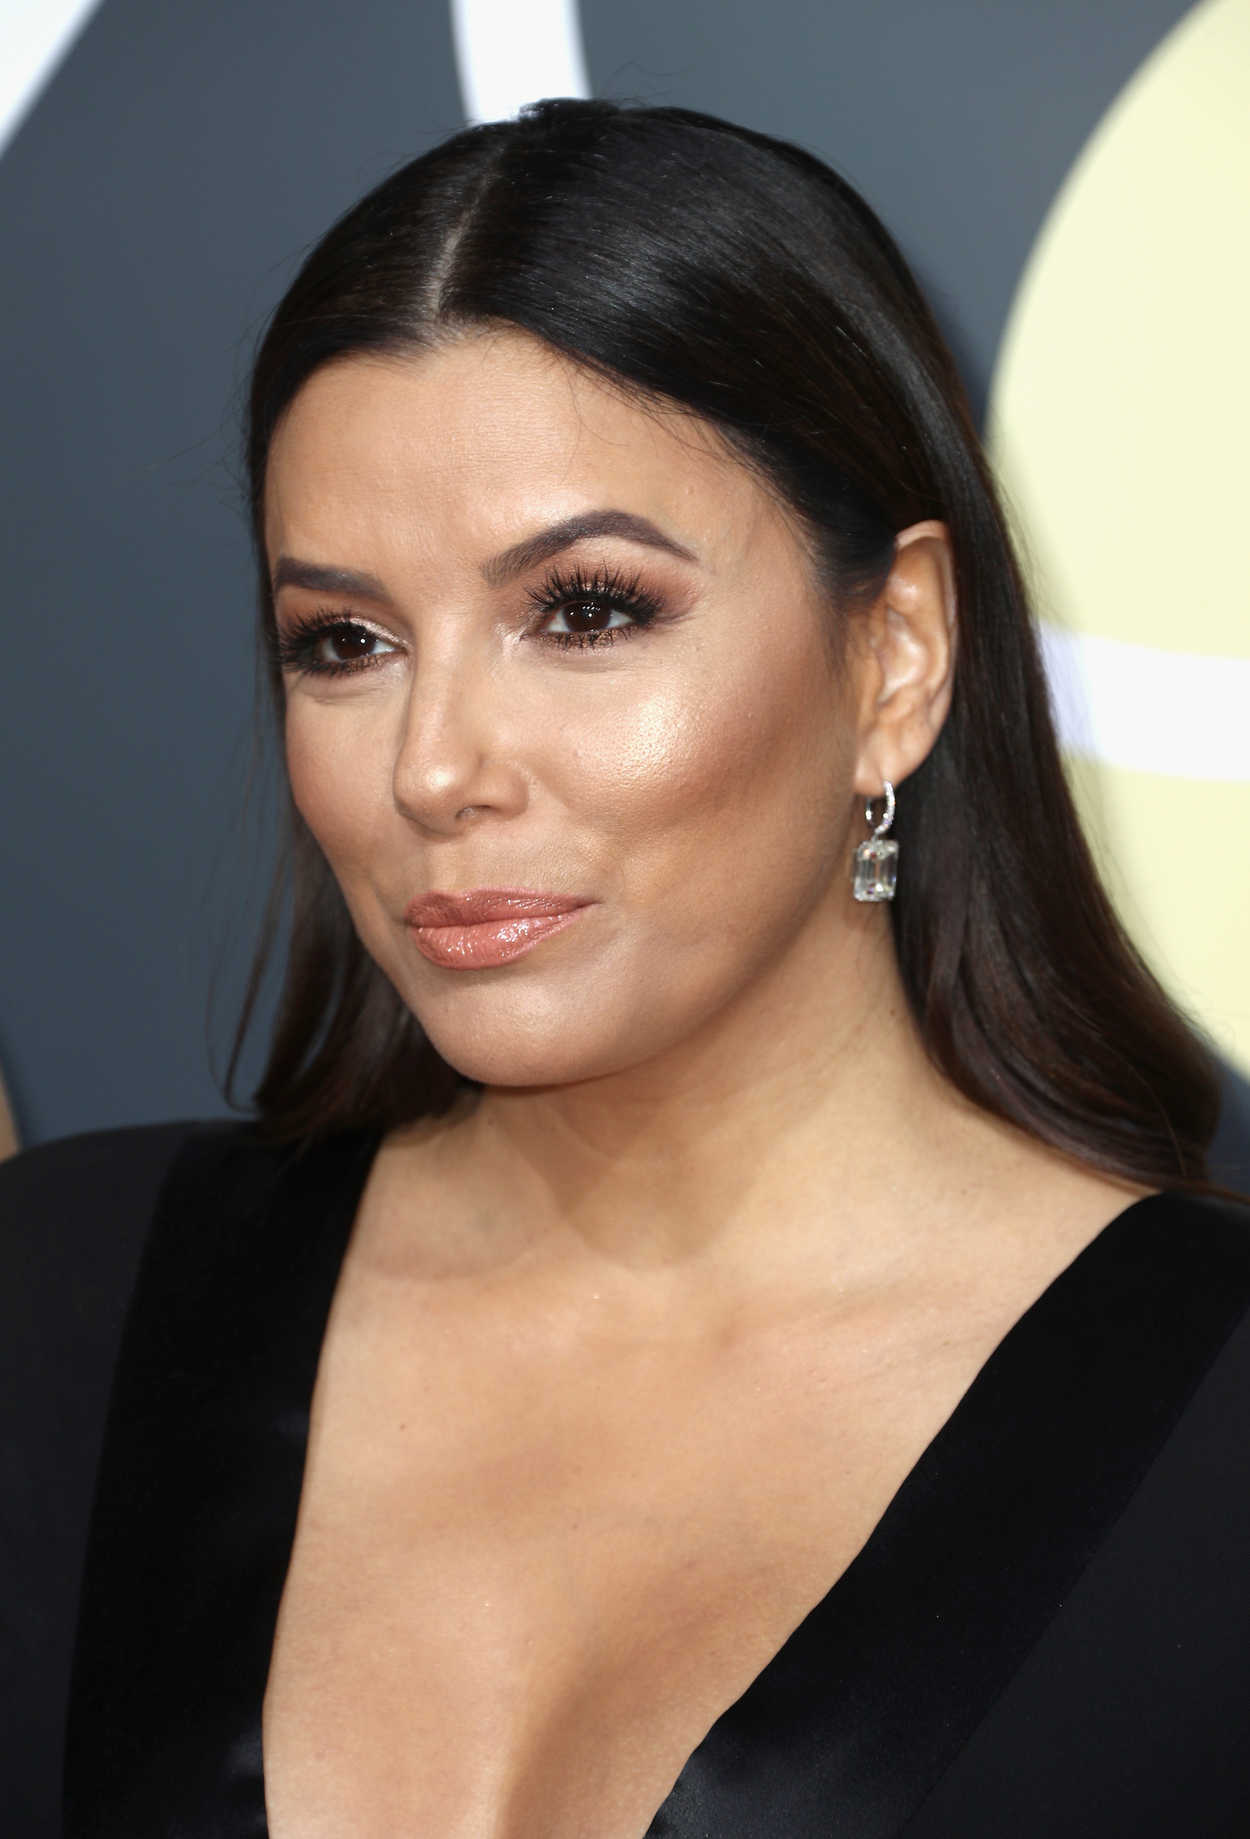 Eva Longoria at the 75th Annual Golden Globe Awards in ... Eva Longoria